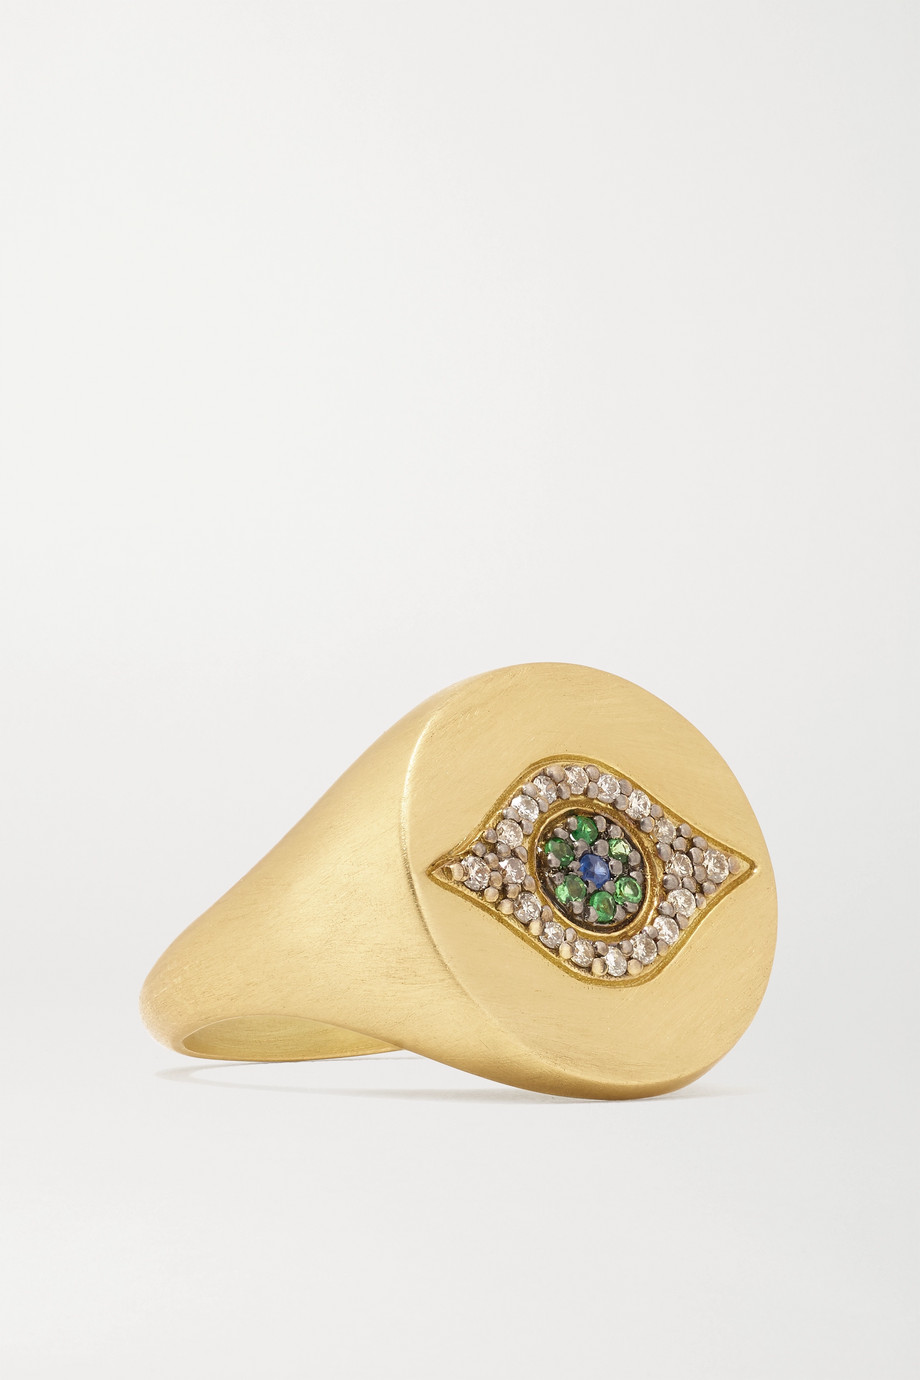 Ileana Makri Golden Dawn 18-karat gold multi-stone ring